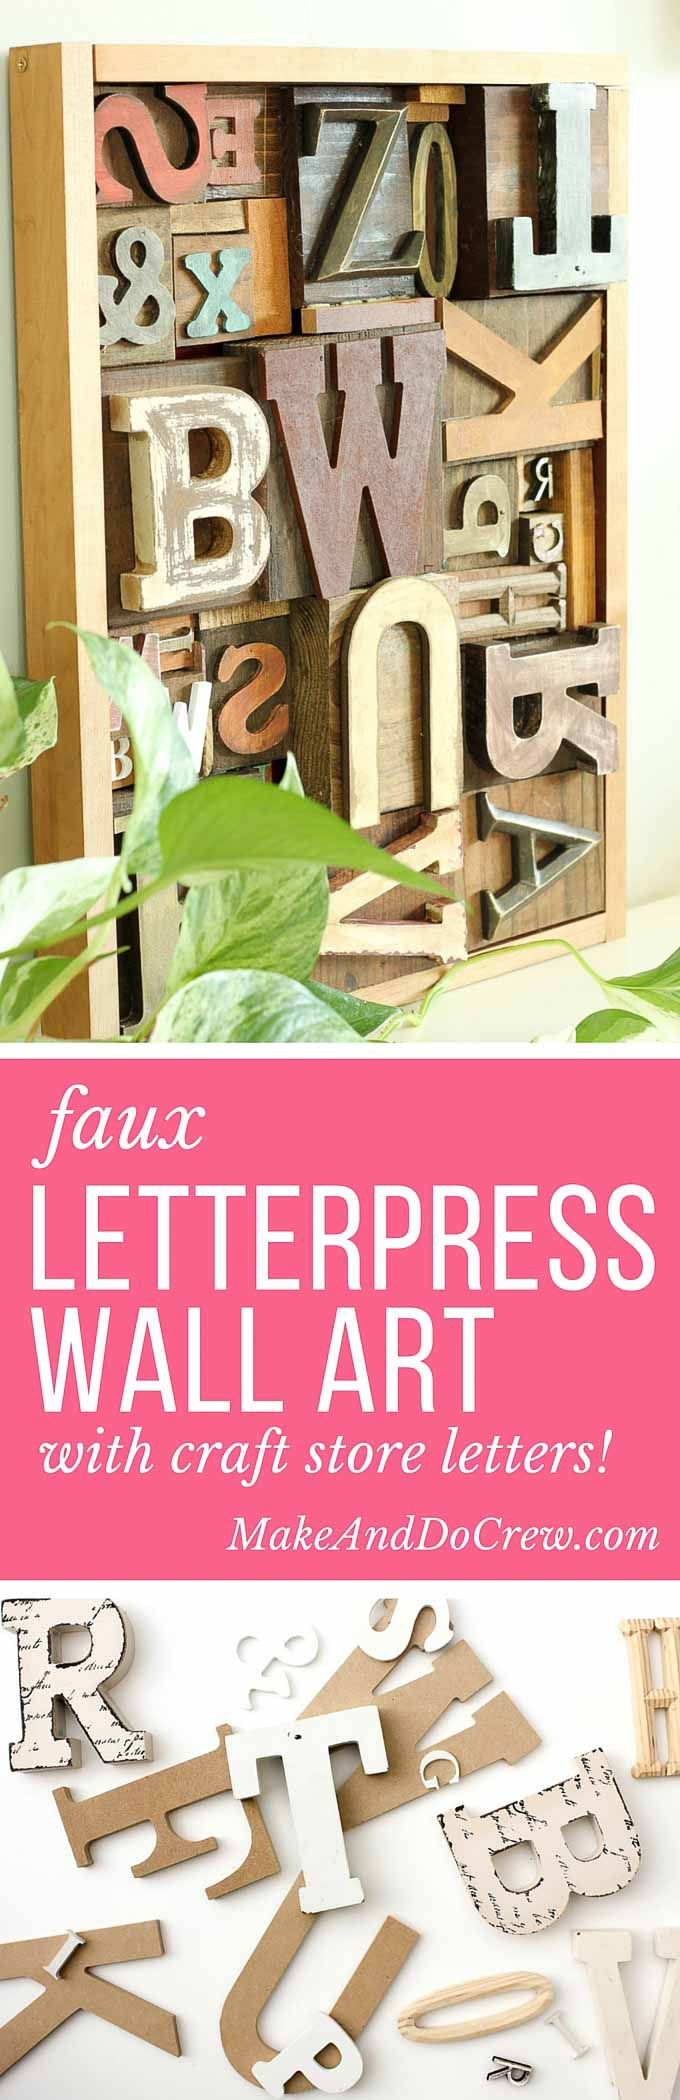 A DIY wall art idea that uses wooden letters (from any craft store) to make faux letterpress printing blocks. The vintage typography look adds so much charm to any room! Click for the full step-by-step tutorial. | MakeAndDoCrew.com